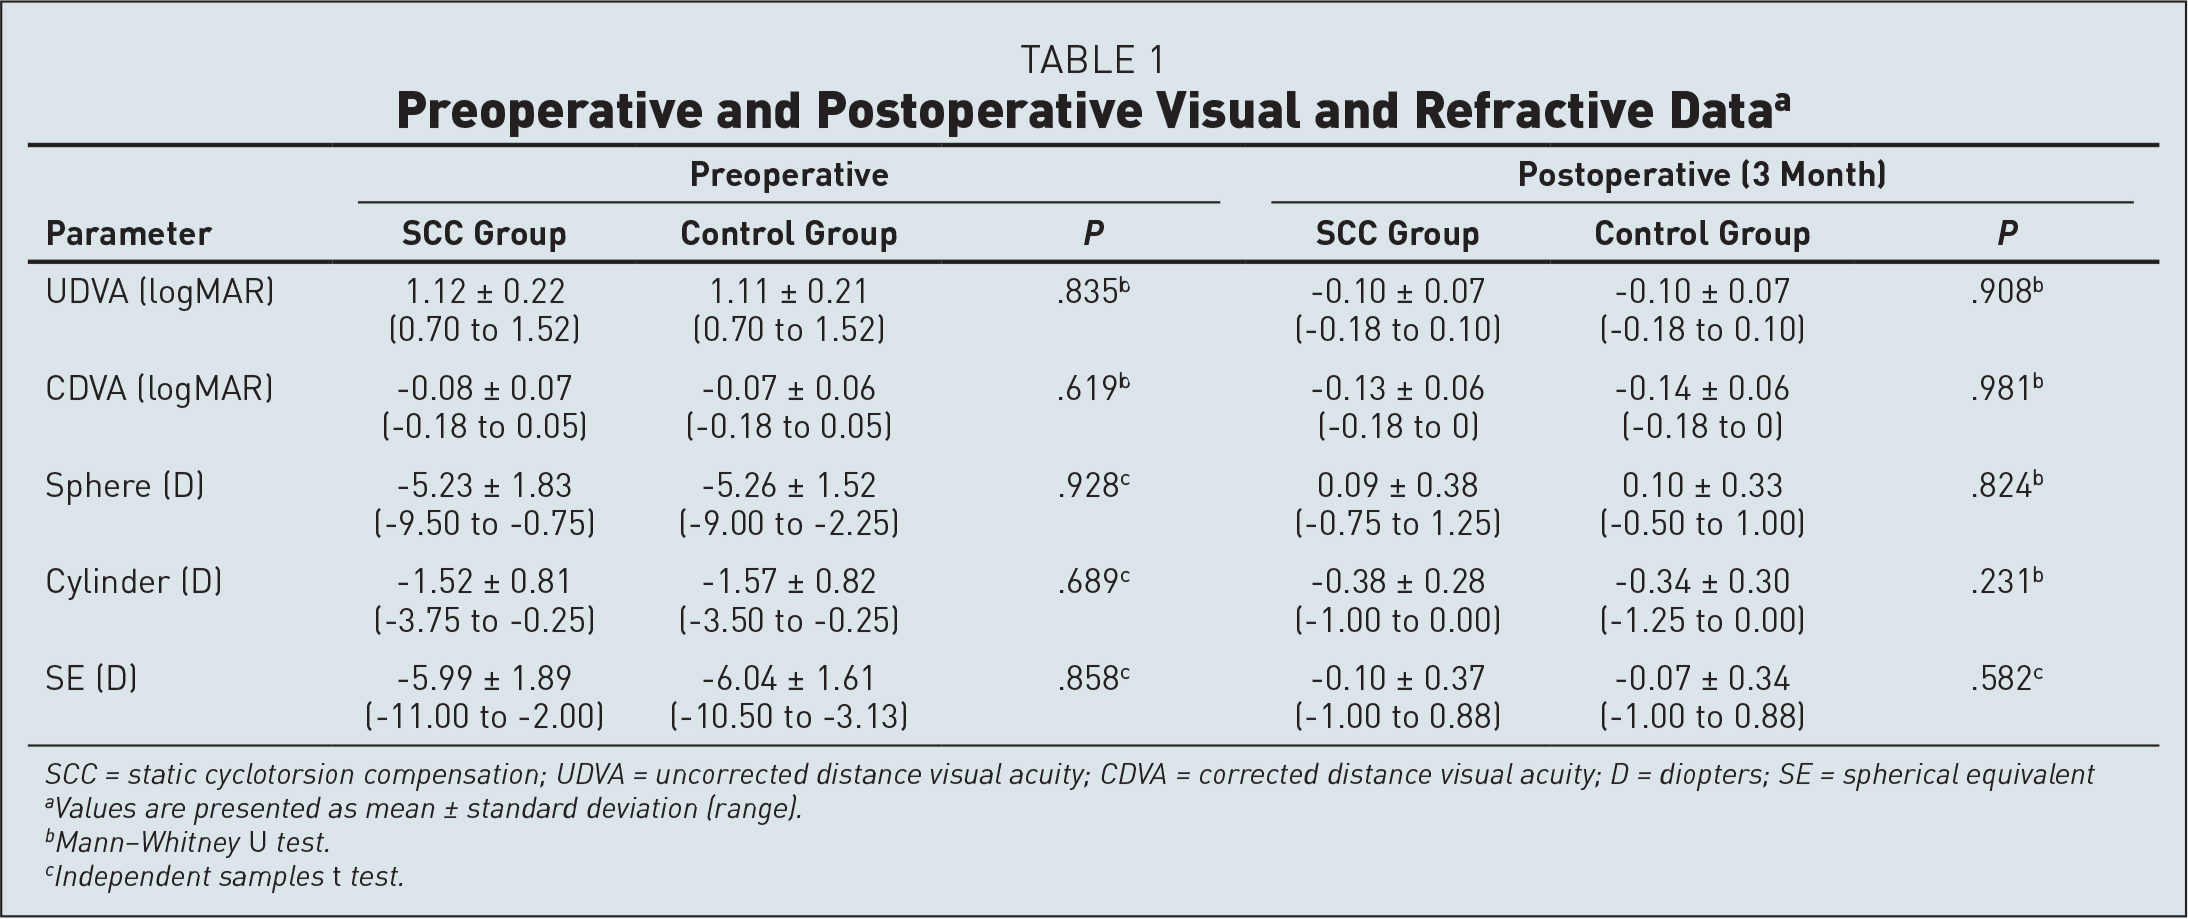 Preoperative and Postoperative Visual and Refractive Dataa